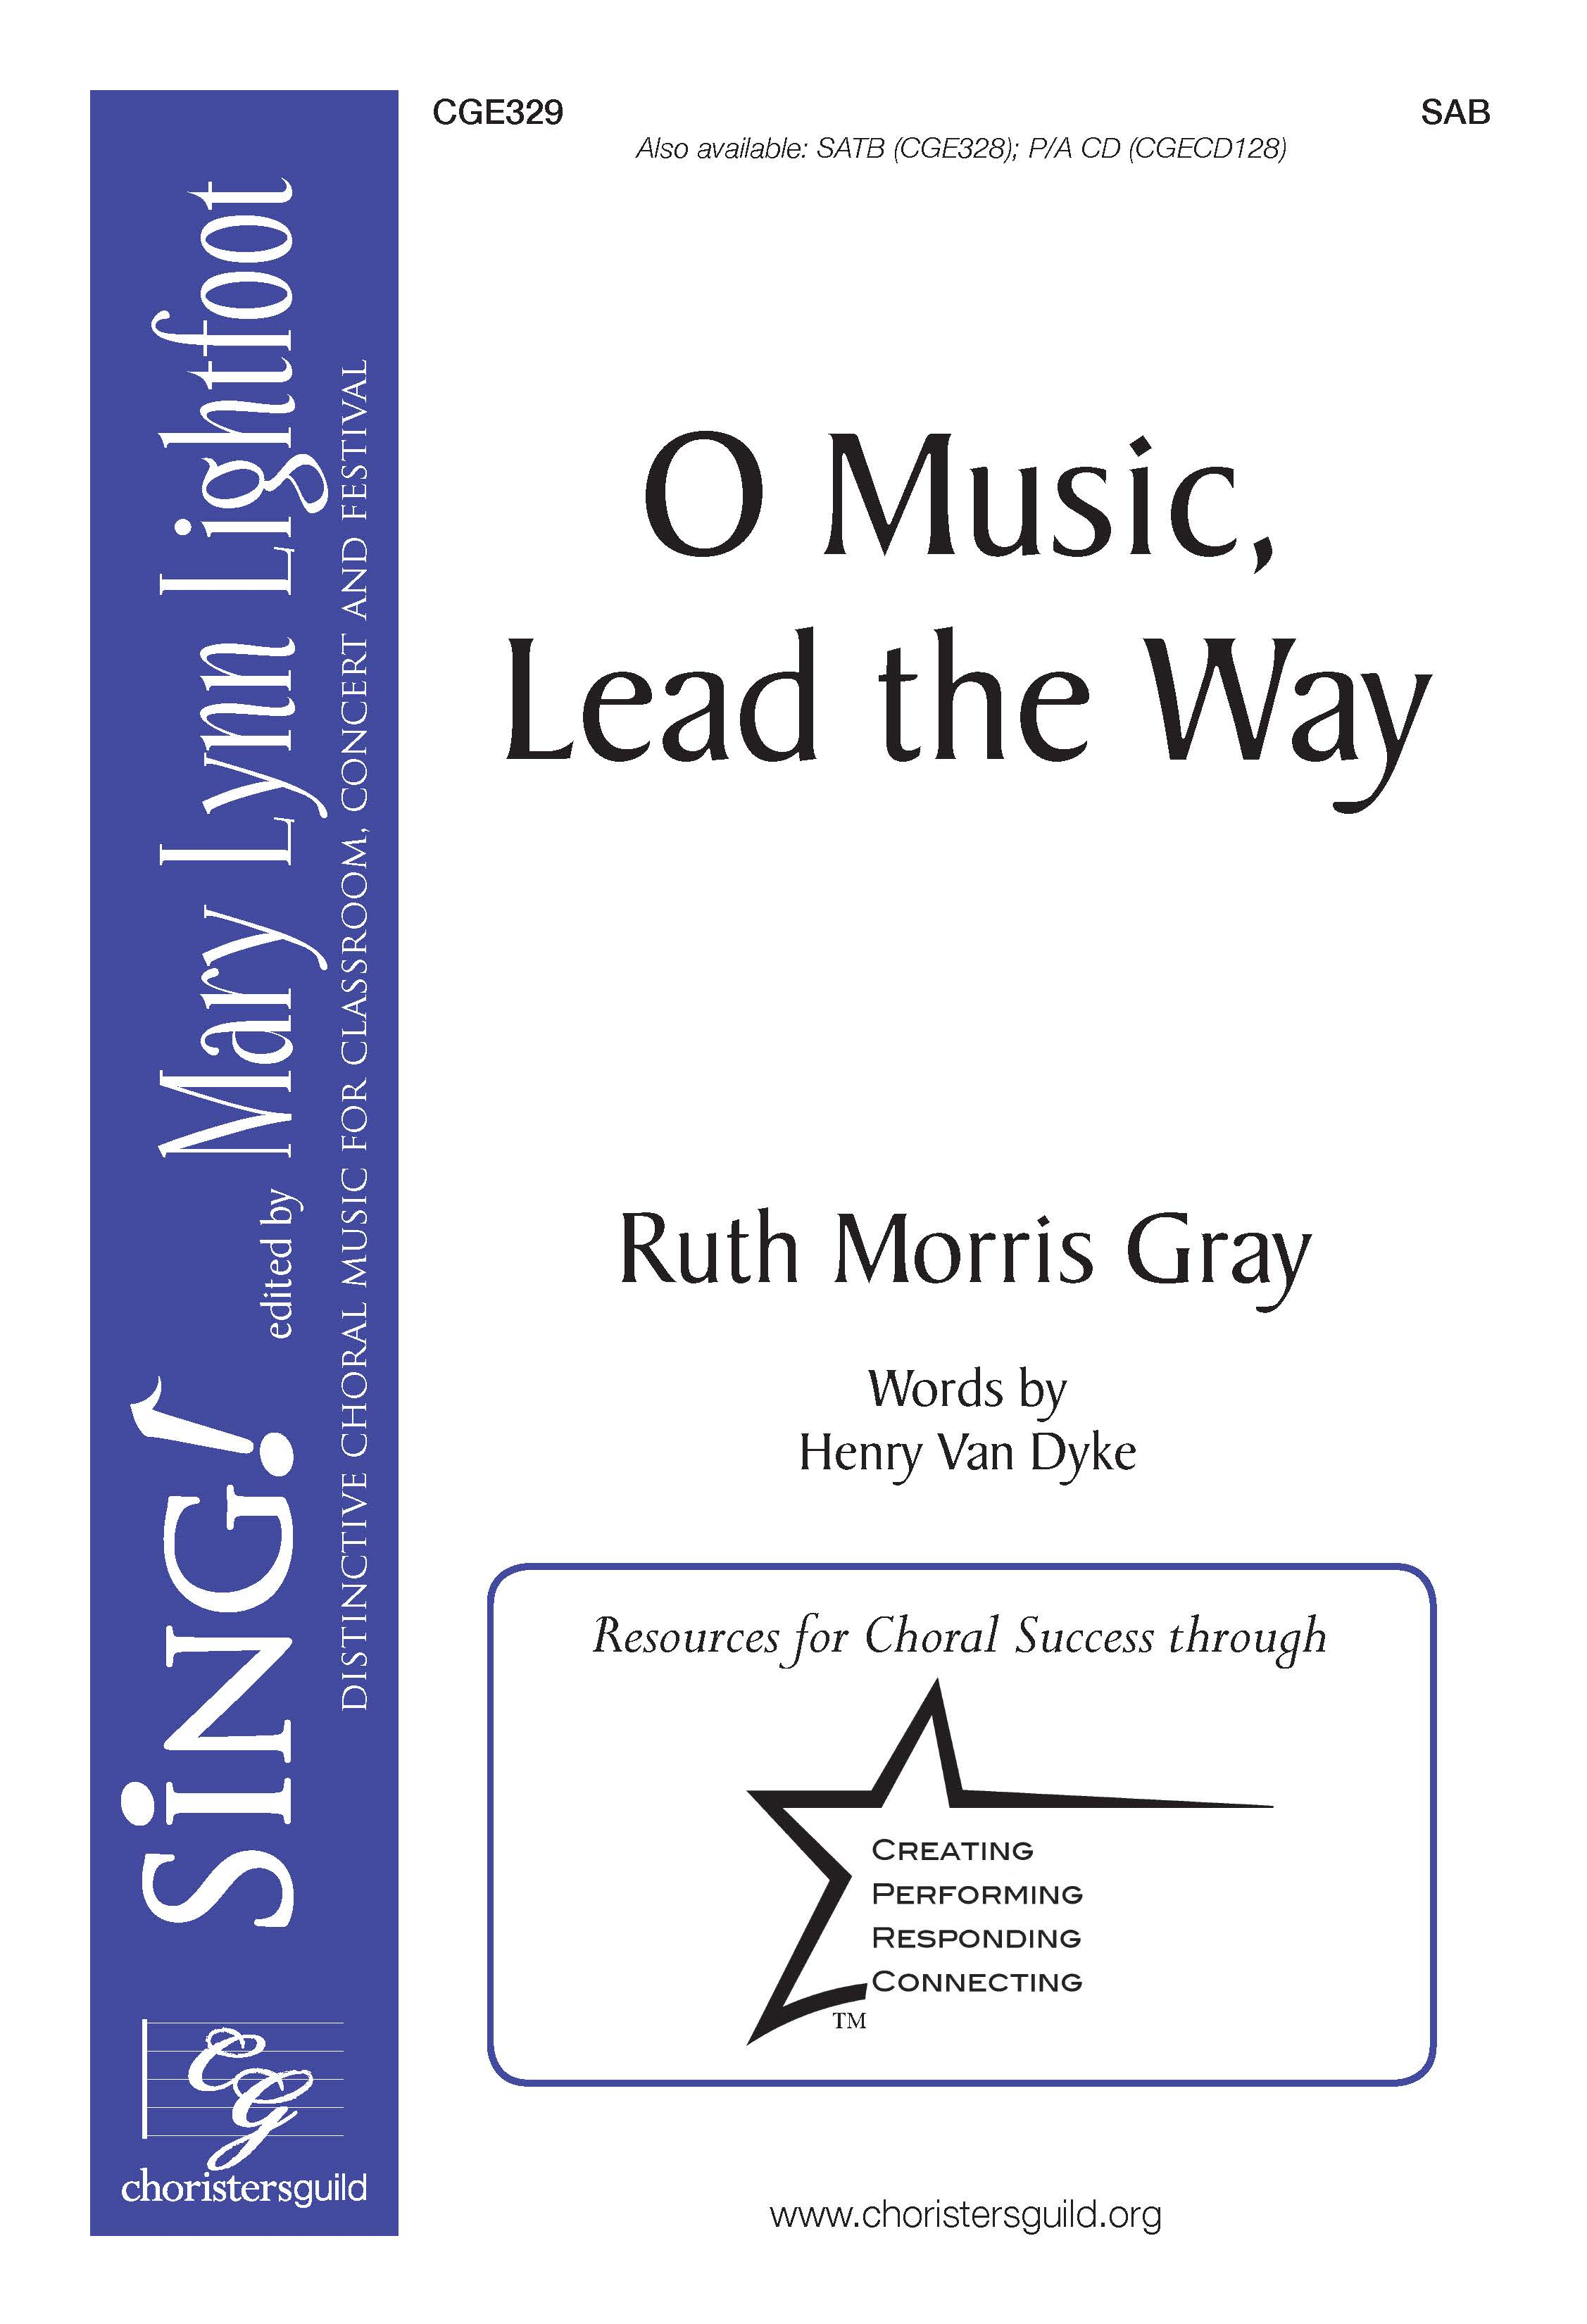 O Music, Lead the Way - SAB